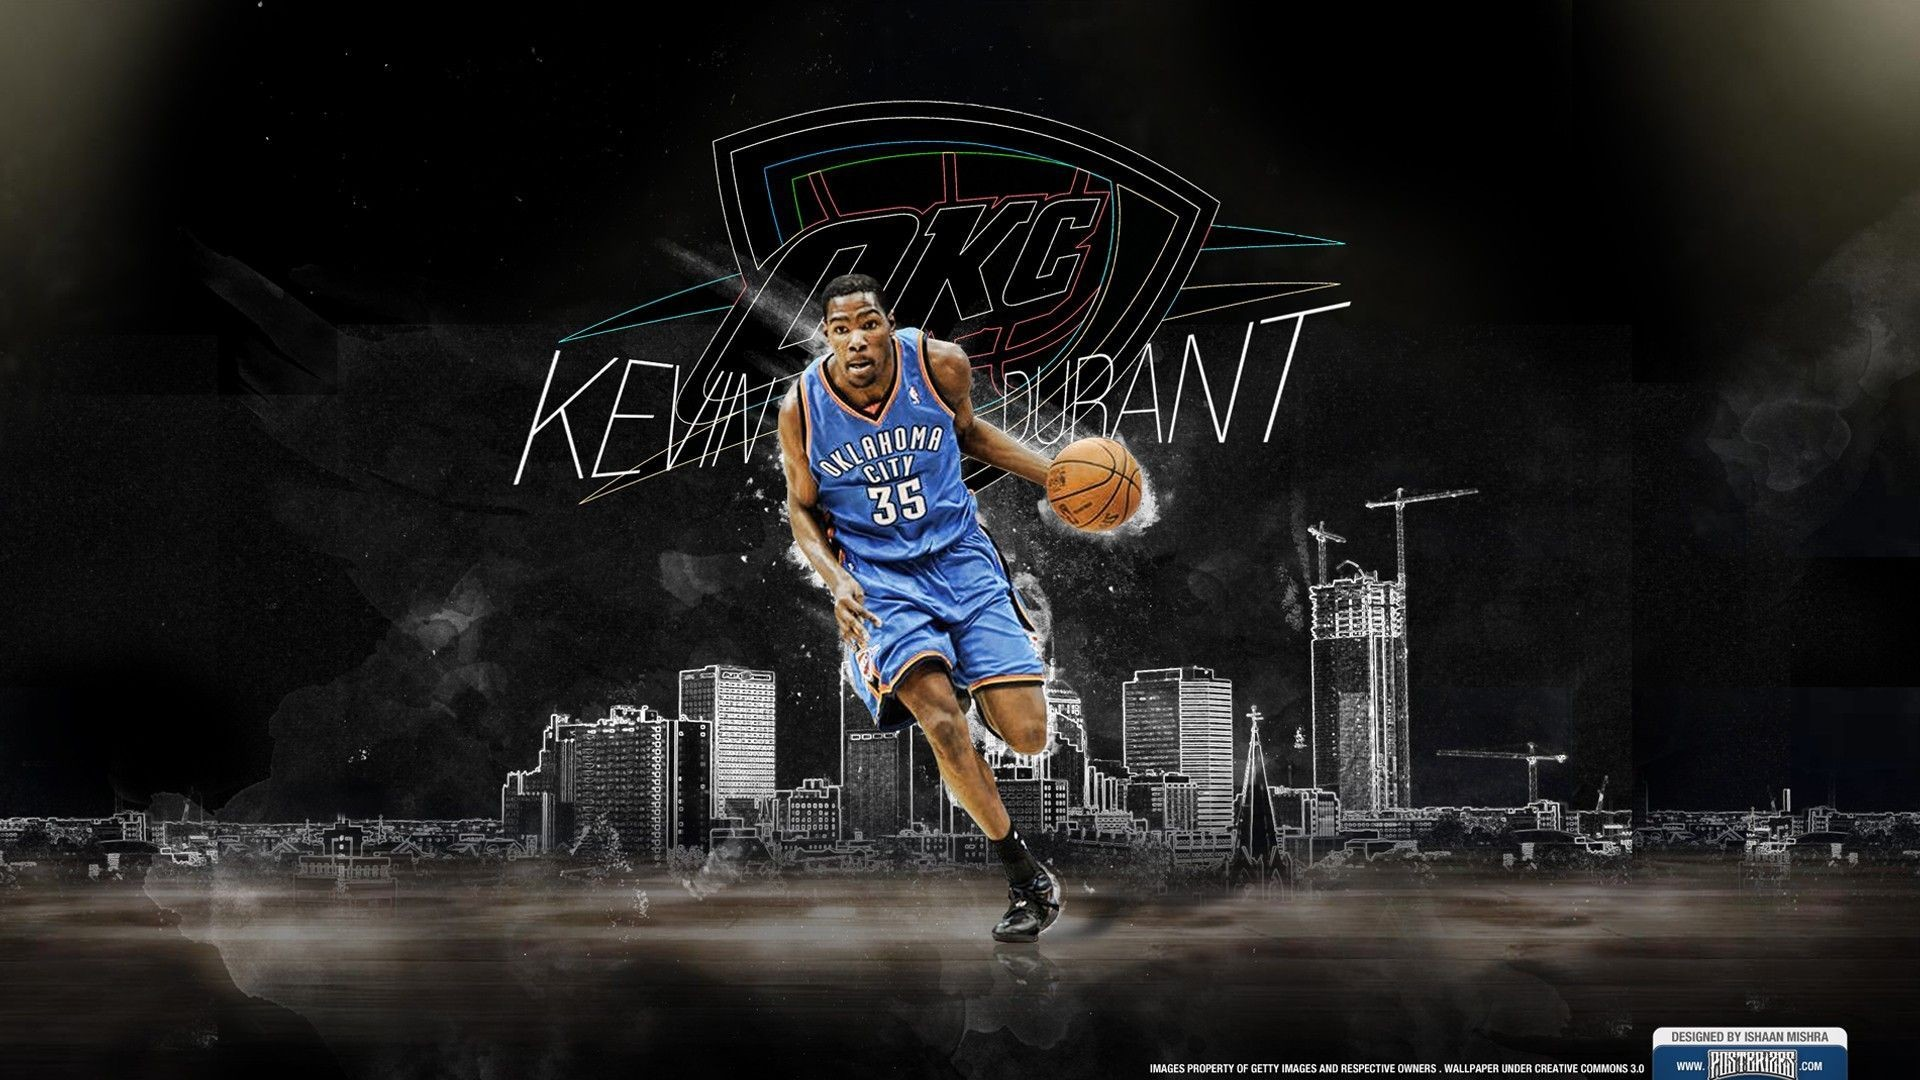 Res: 1920x1080, Kevin Durant HD desktop wallpaper Widescreen High Definition